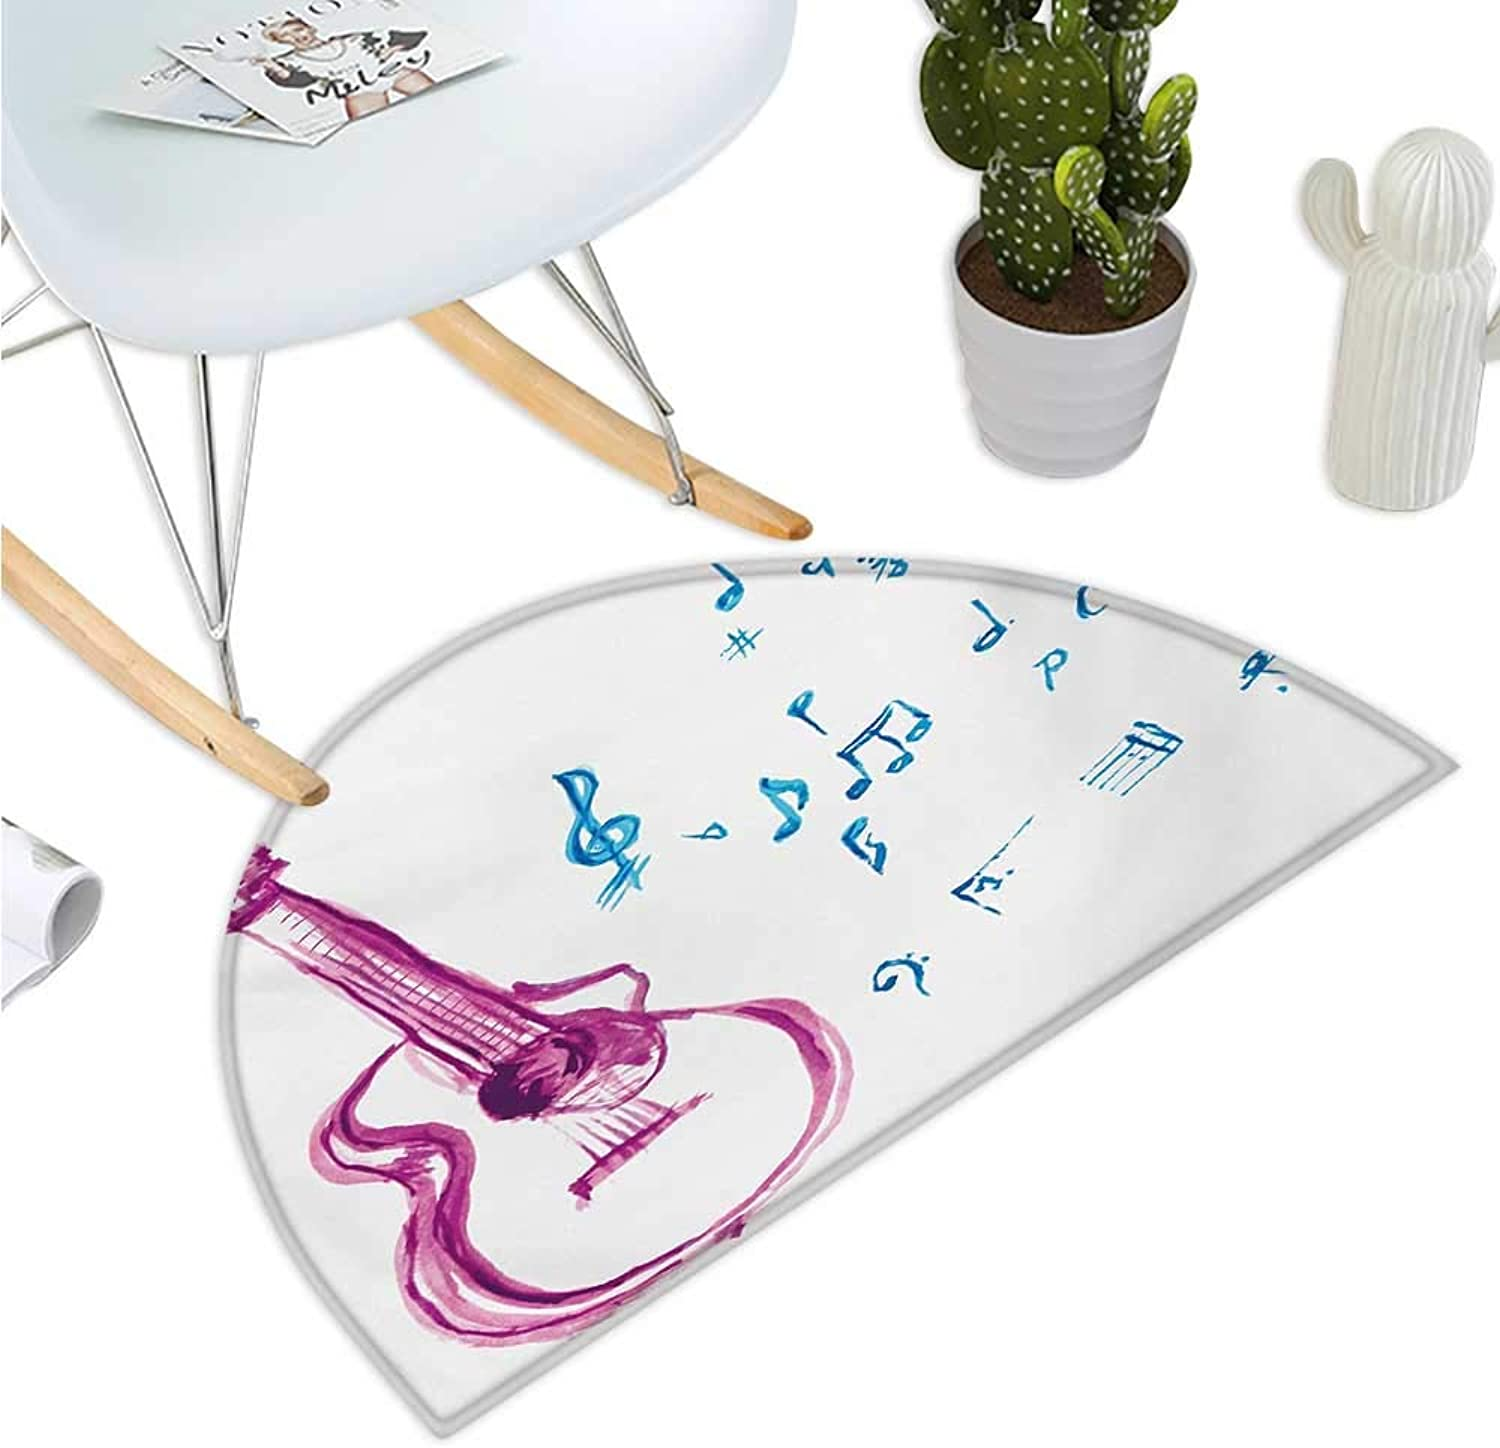 Guitar Semicircular Cushion Watercolor Musical Instrument with Notes Sheet Elements Brush Stroke Effect Entry Door Mat H 43.3  xD 64.9  Magenta bluee White